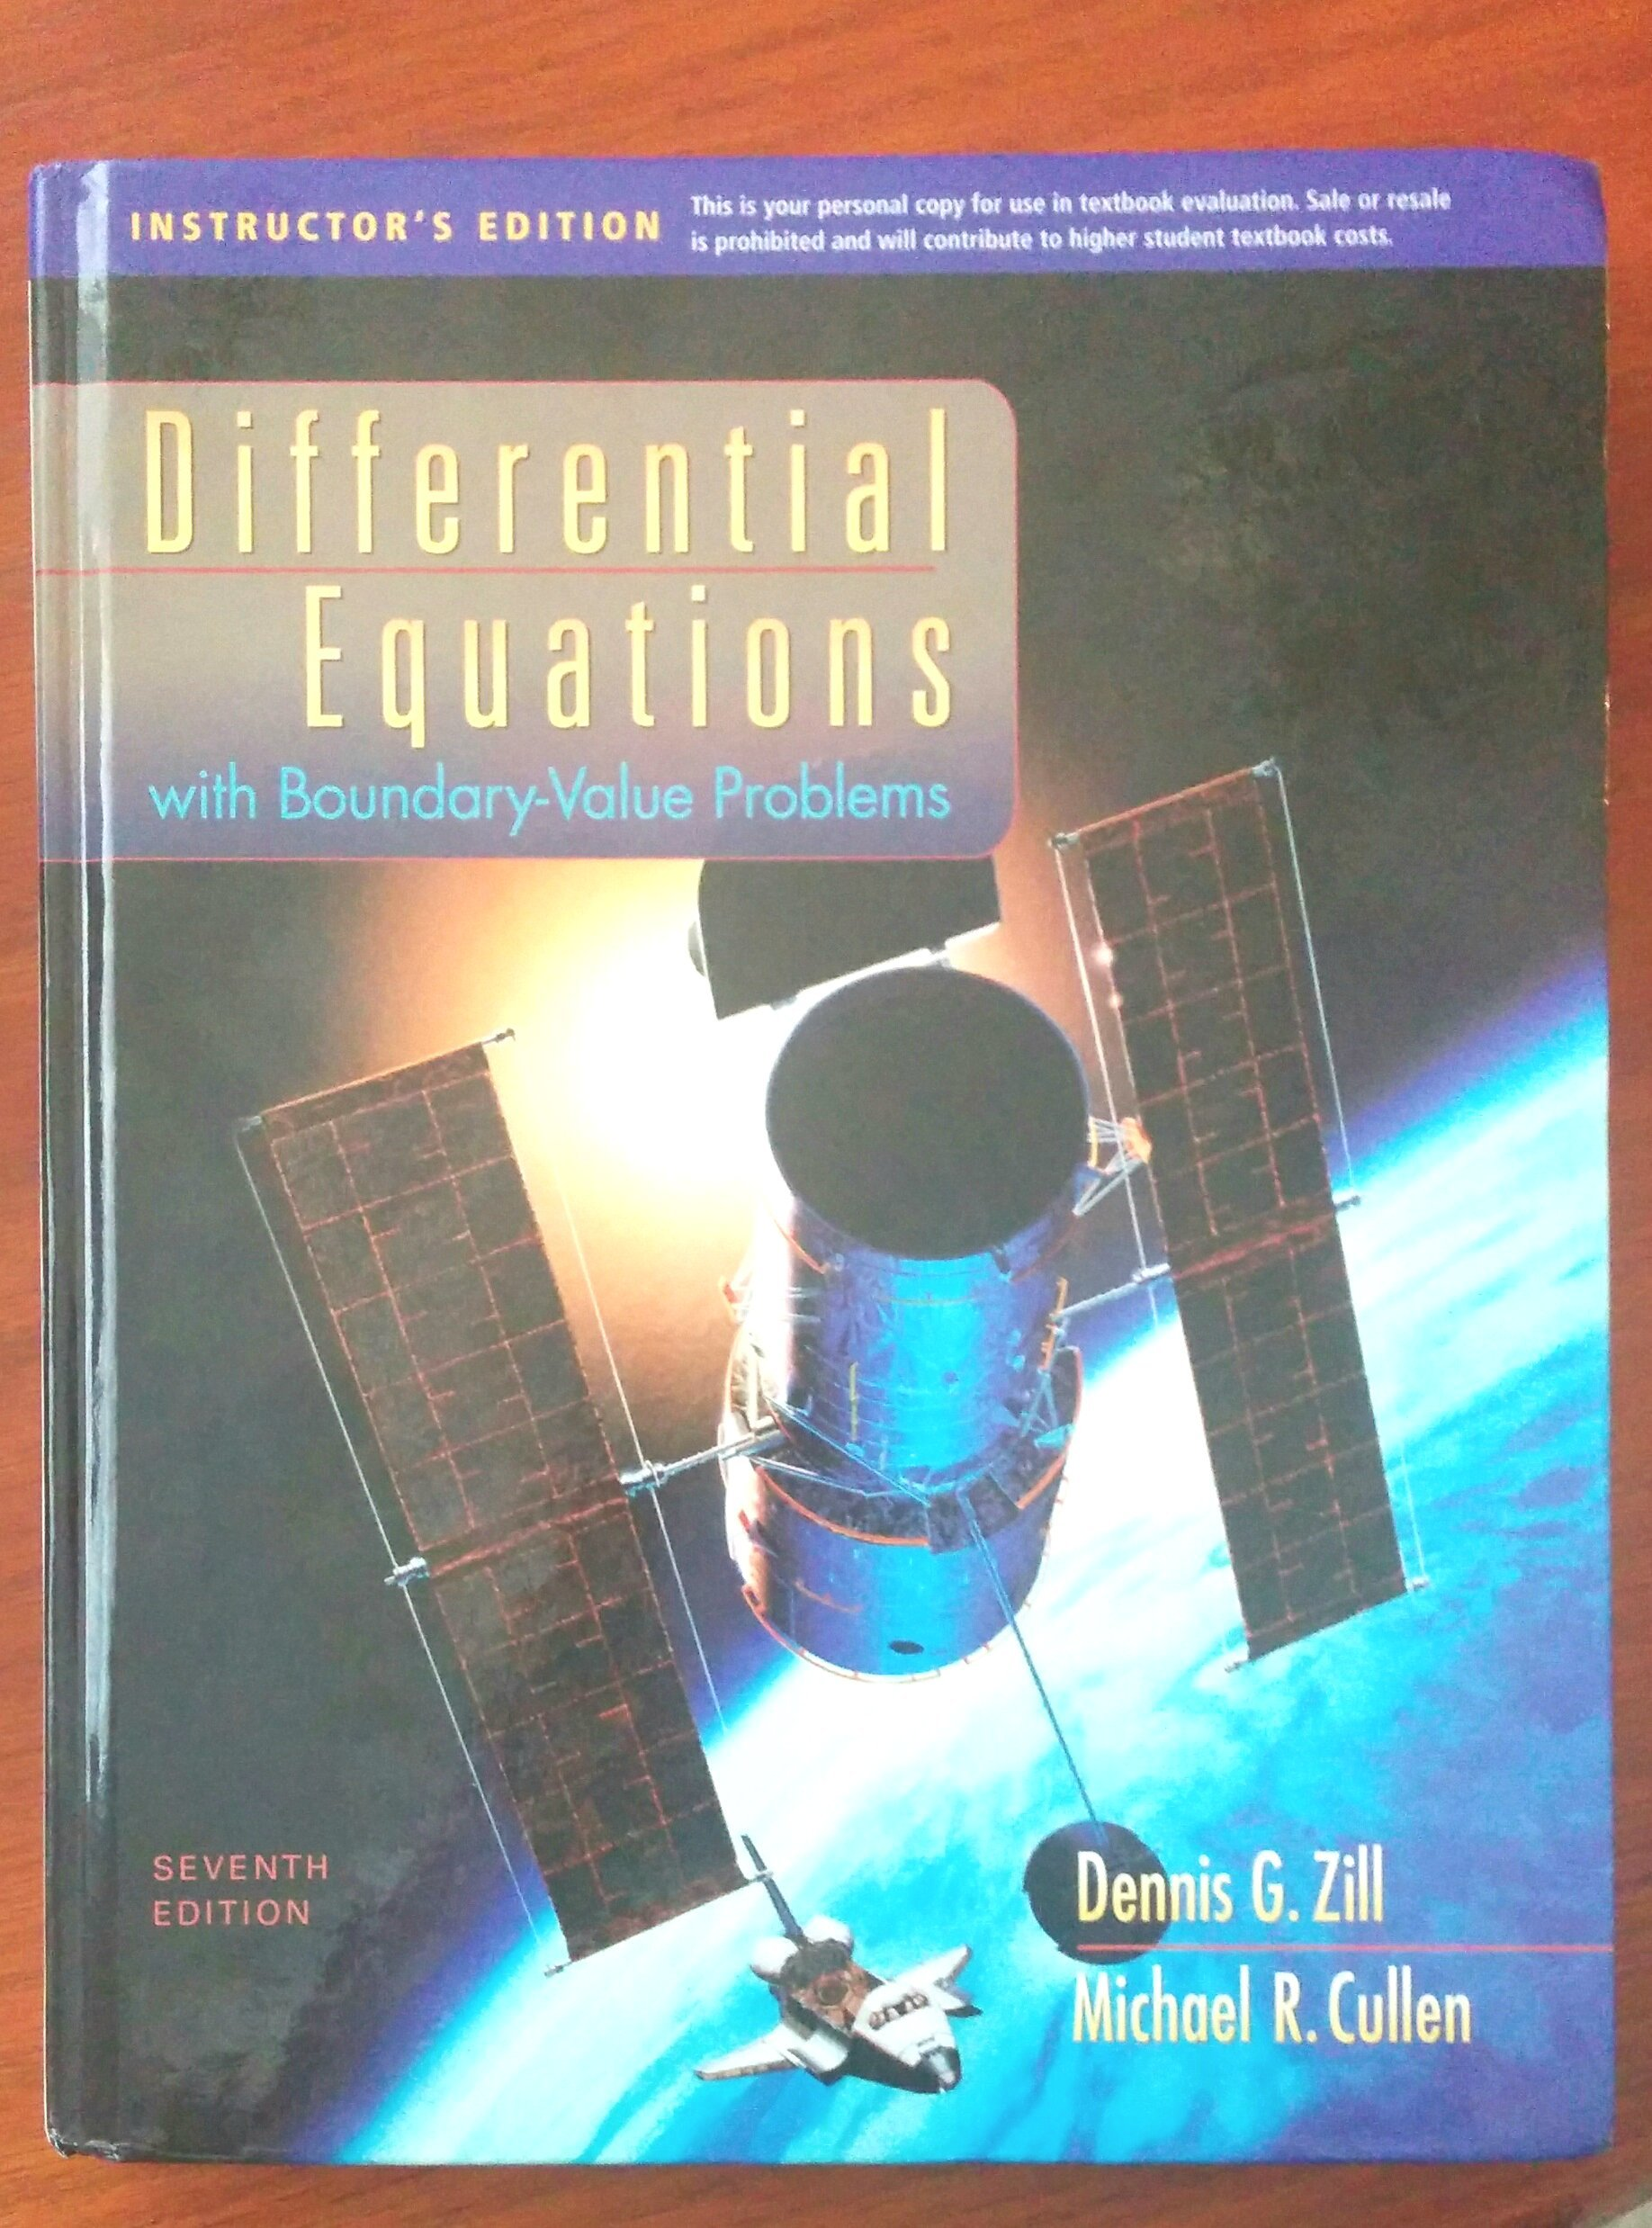 Differential Equations with Boundary-Value Problems Seventh 7th Edition  Instructor's Edition: Dennis G. Zill, Michael R. Cullen: 9780495558781:  Amazon.com: ...